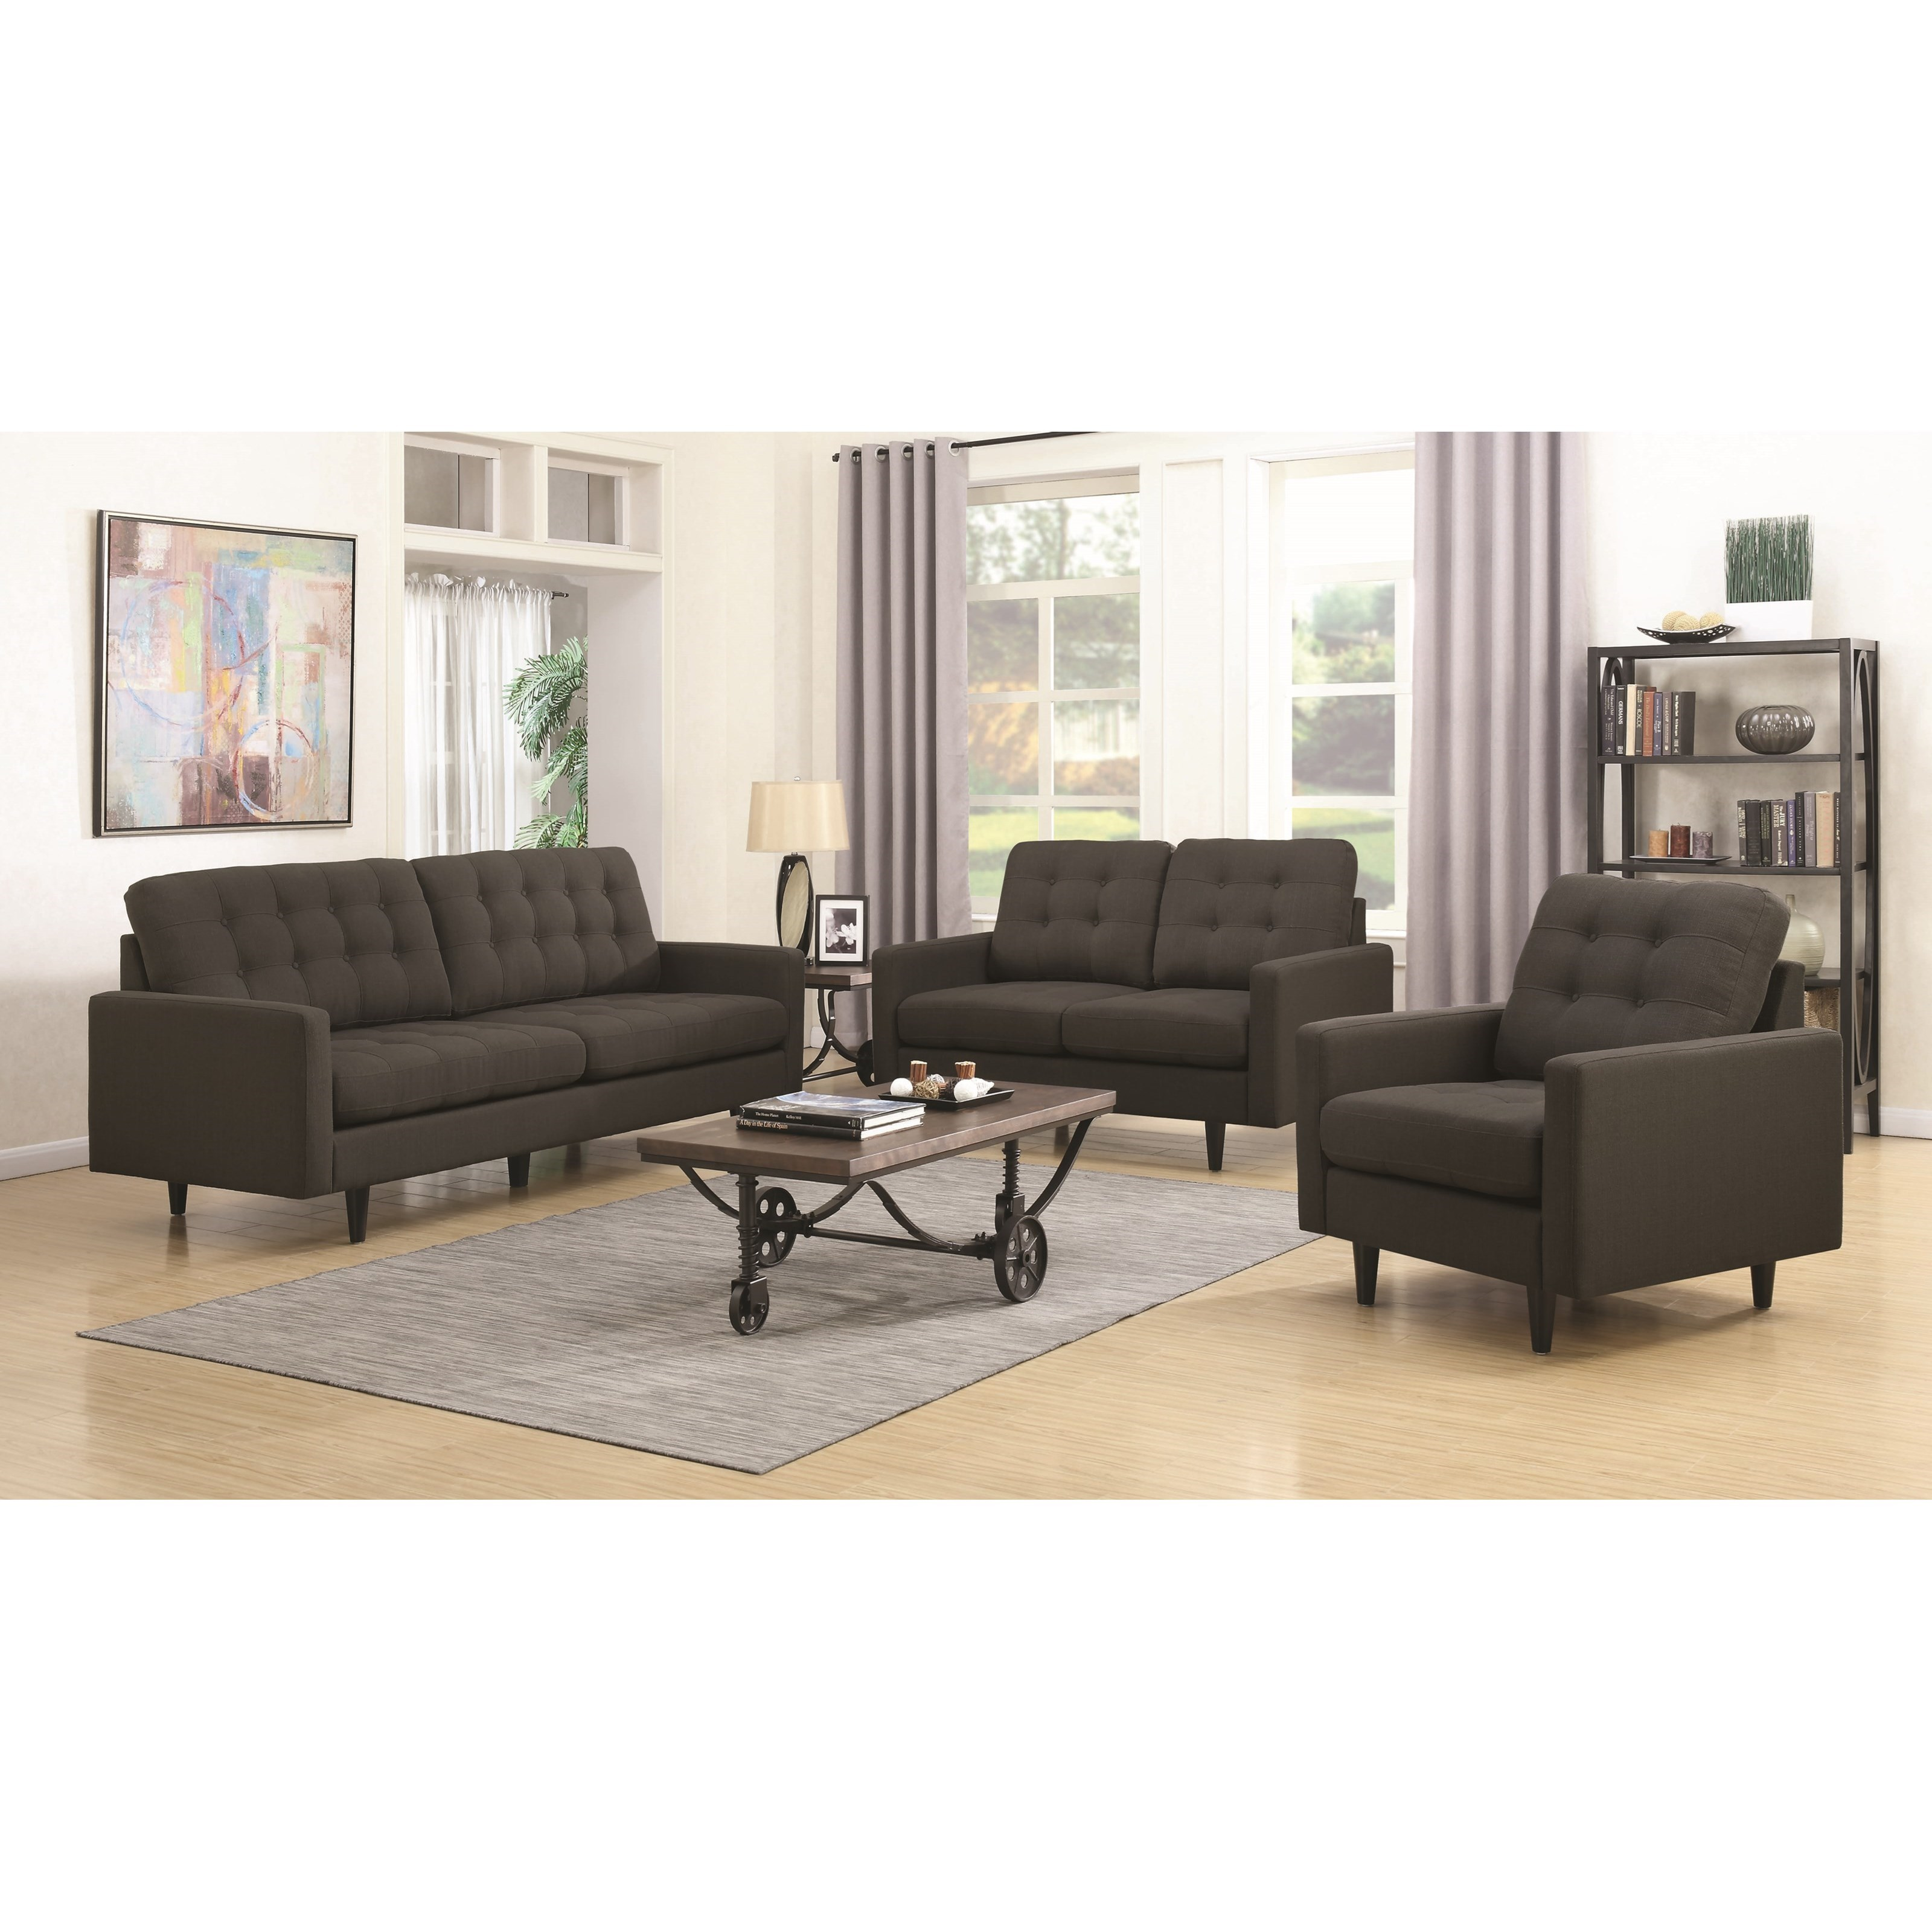 Coaster Kesson Living Room Group - Item Number: 505370 Living Room Group 2